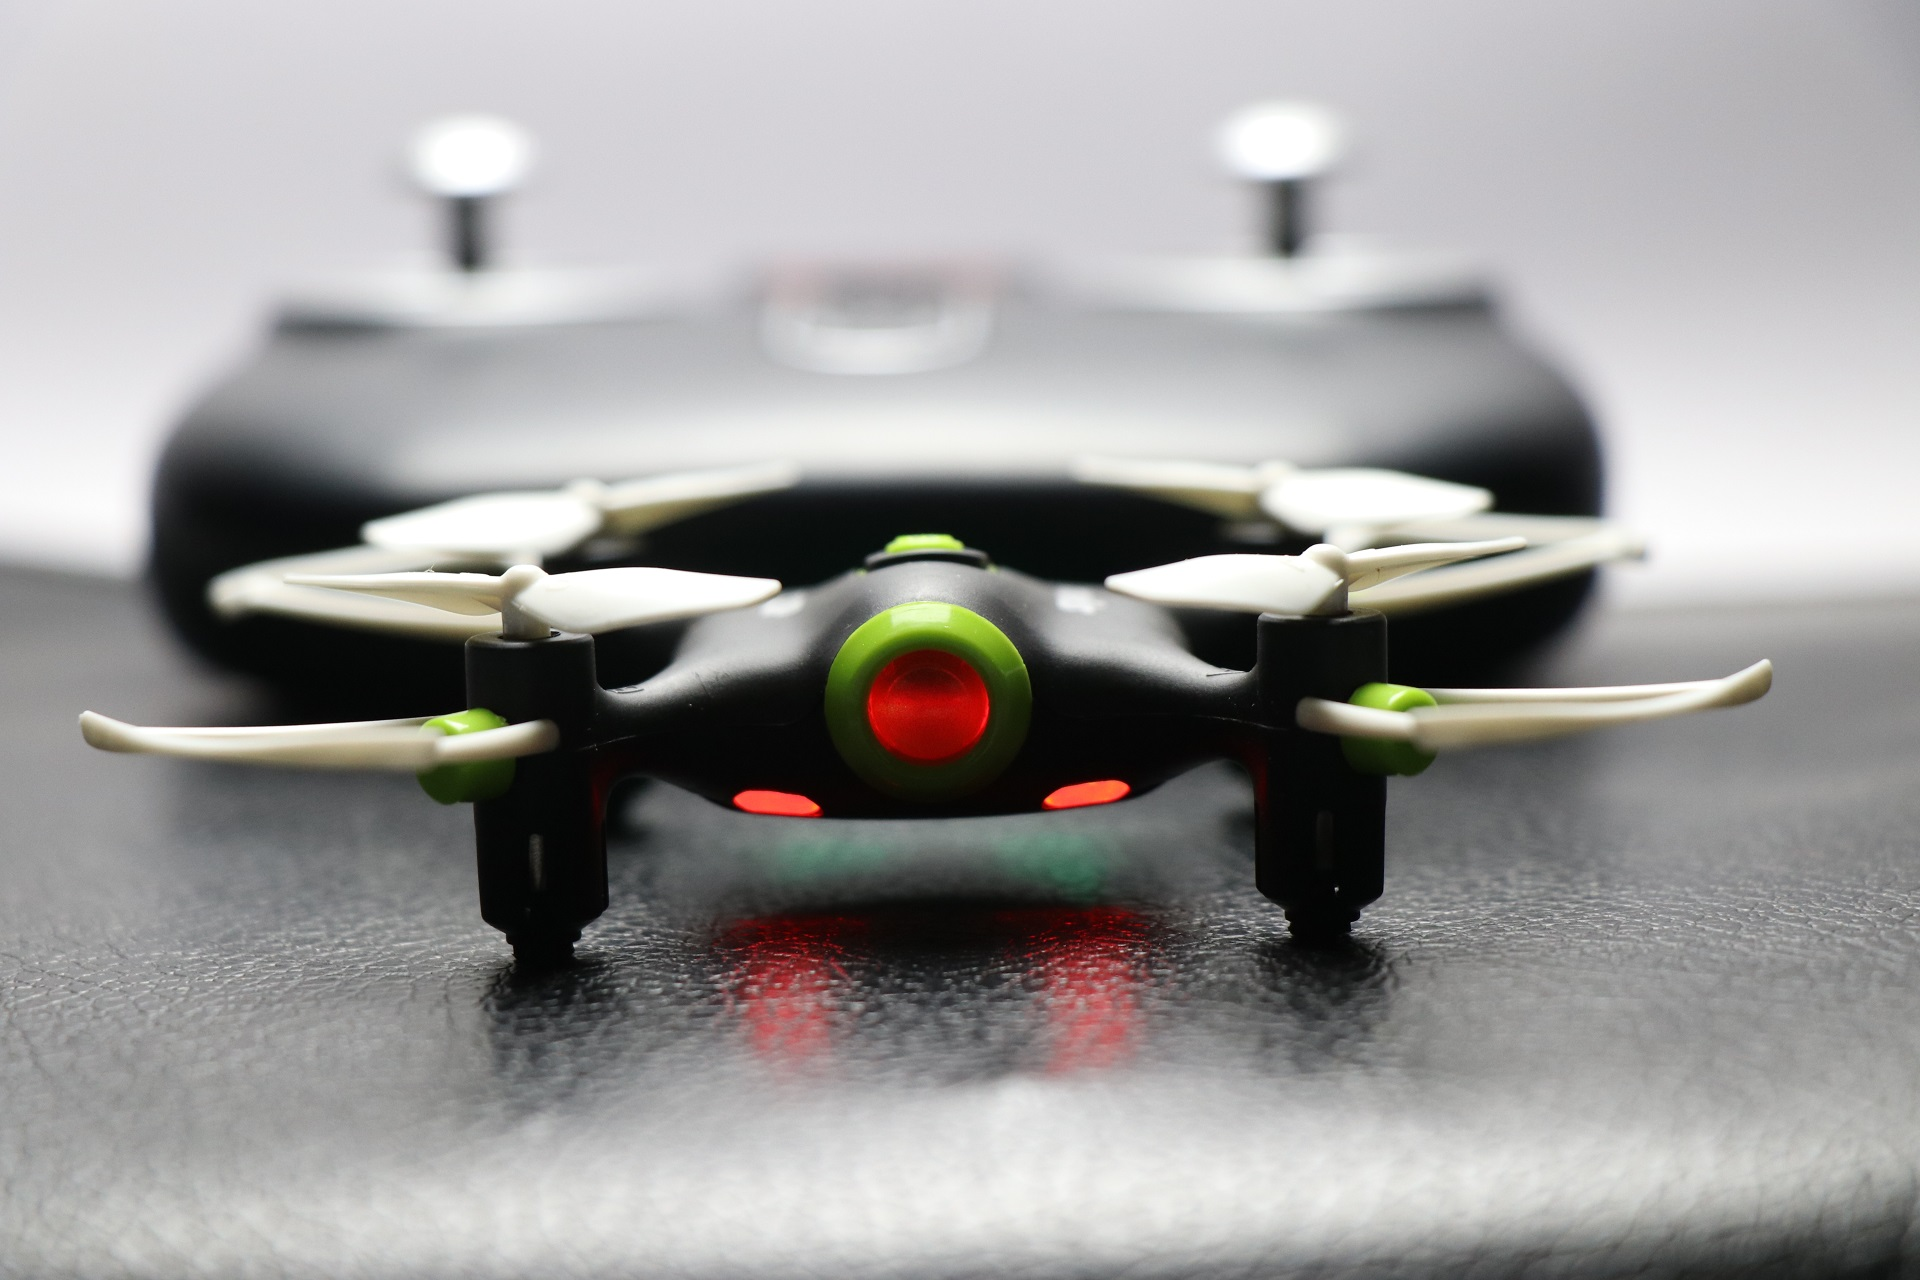 How Does Drone Work